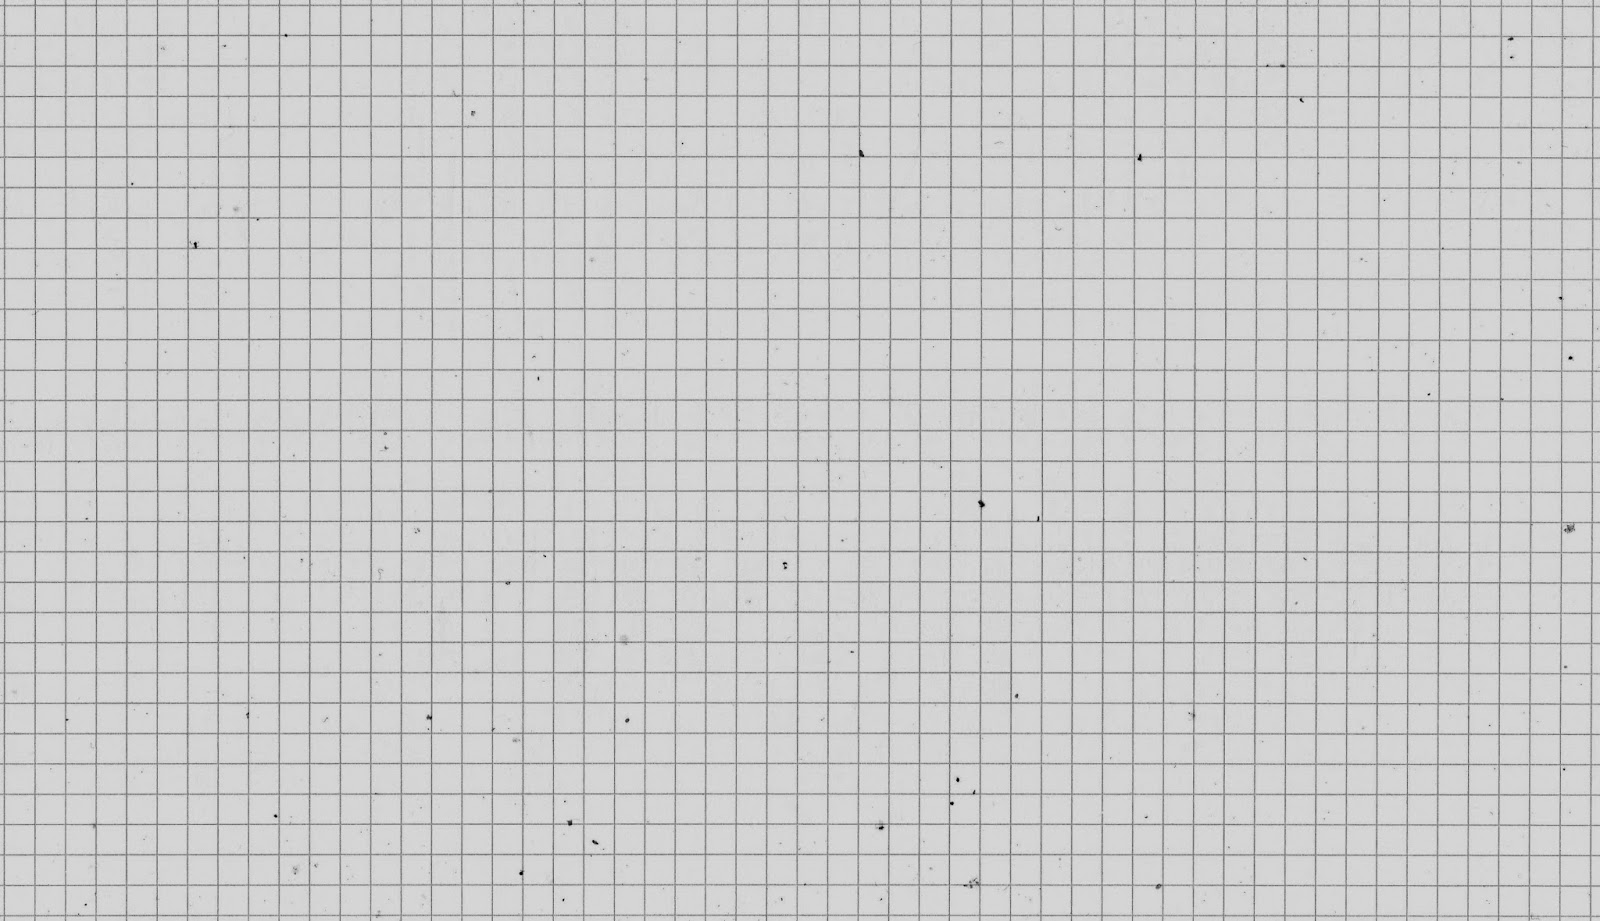 Valianttheywere: Cartography tools: Big graph paper for